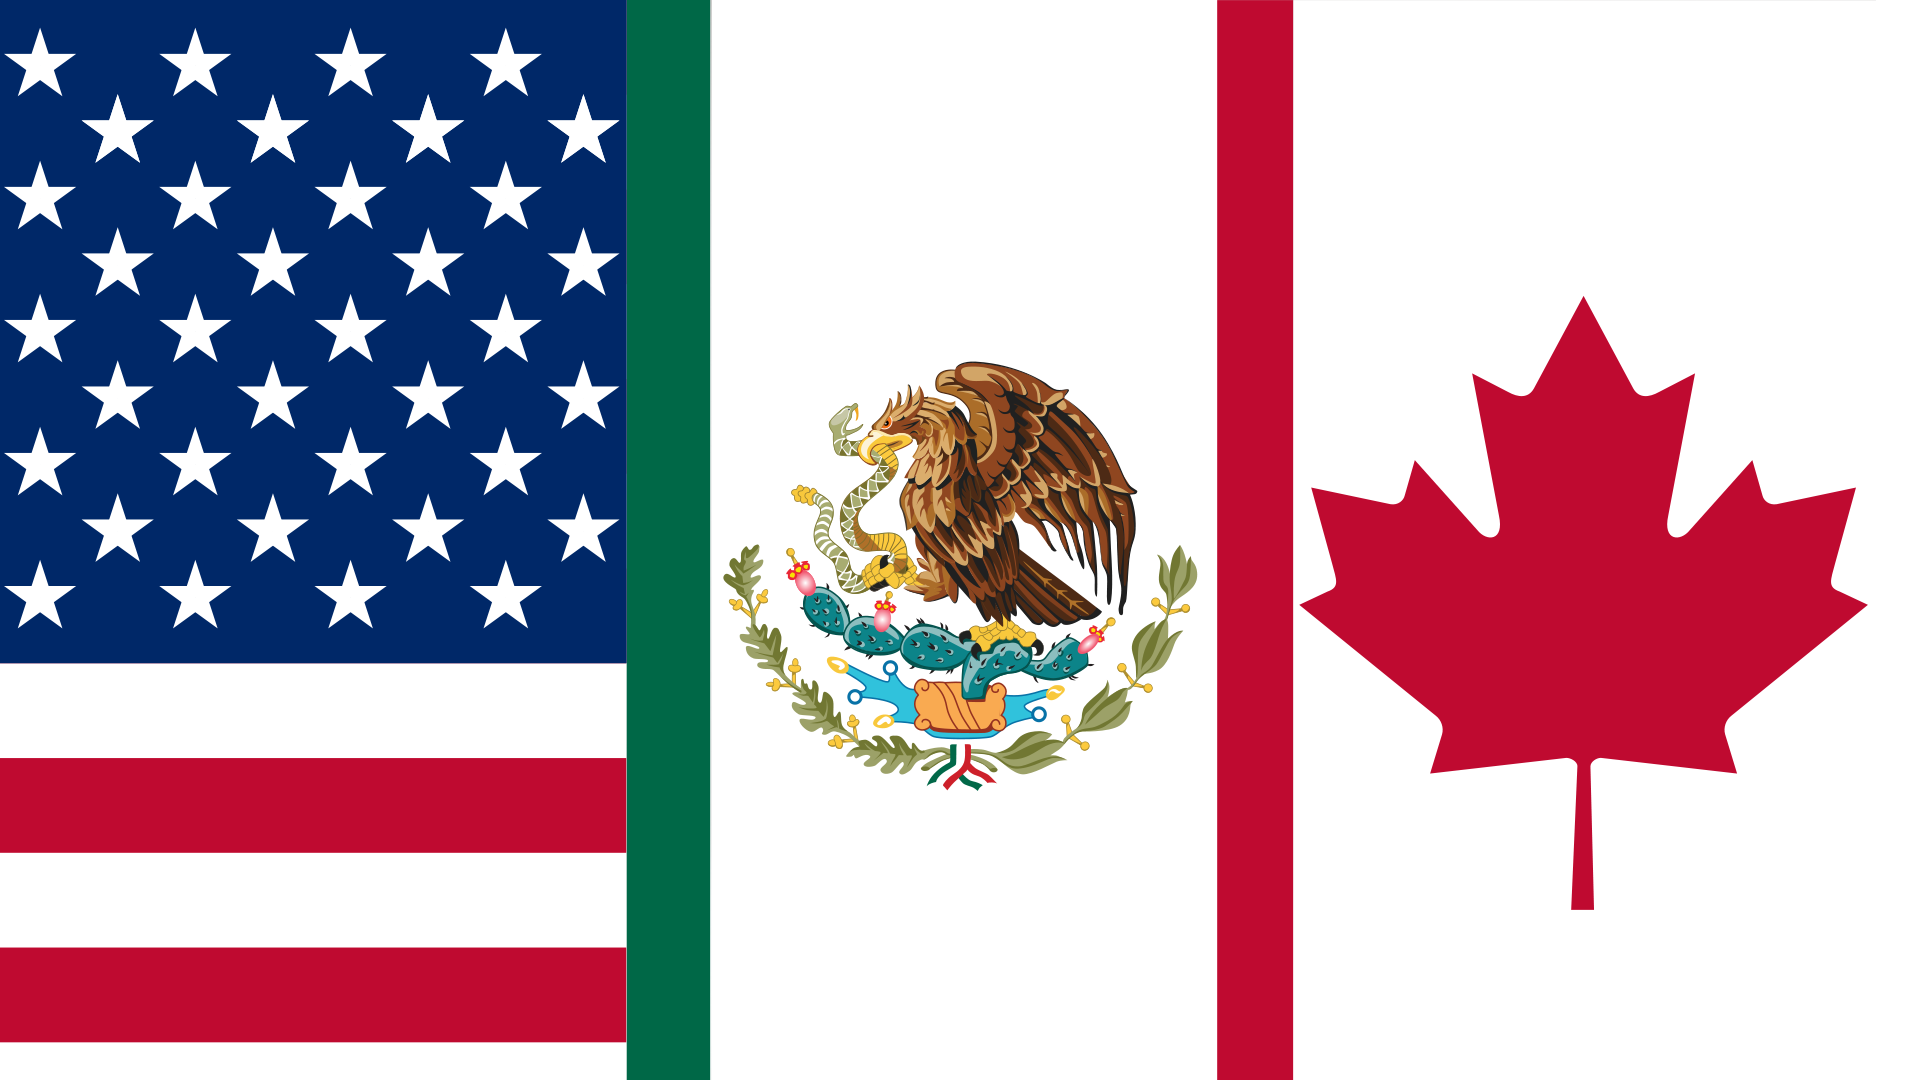 Flag of the North American Free Trade Agreement